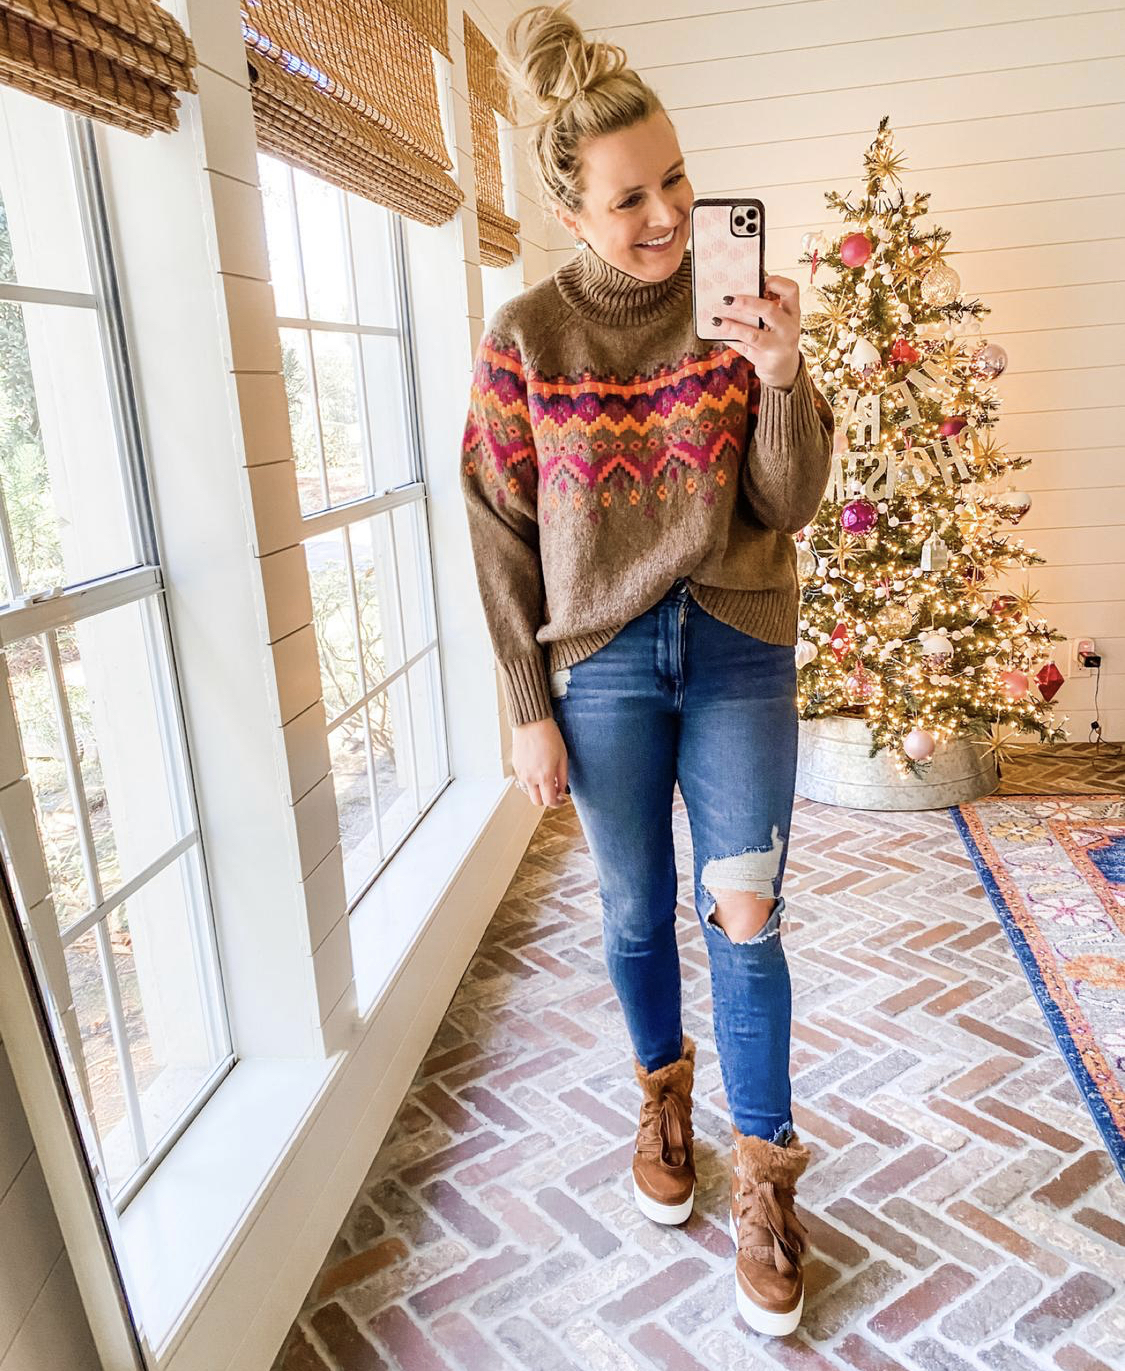 December Outfits by popular Houston fashion blog, Fancy Ashley: image of a woman standing in front of a Christmas tree decorated with pink, white and silver ornaments and wearing a brown, pink and orange nordic print turtleneck sweater, distressed denim, and brown fur lined hightop sneakers.